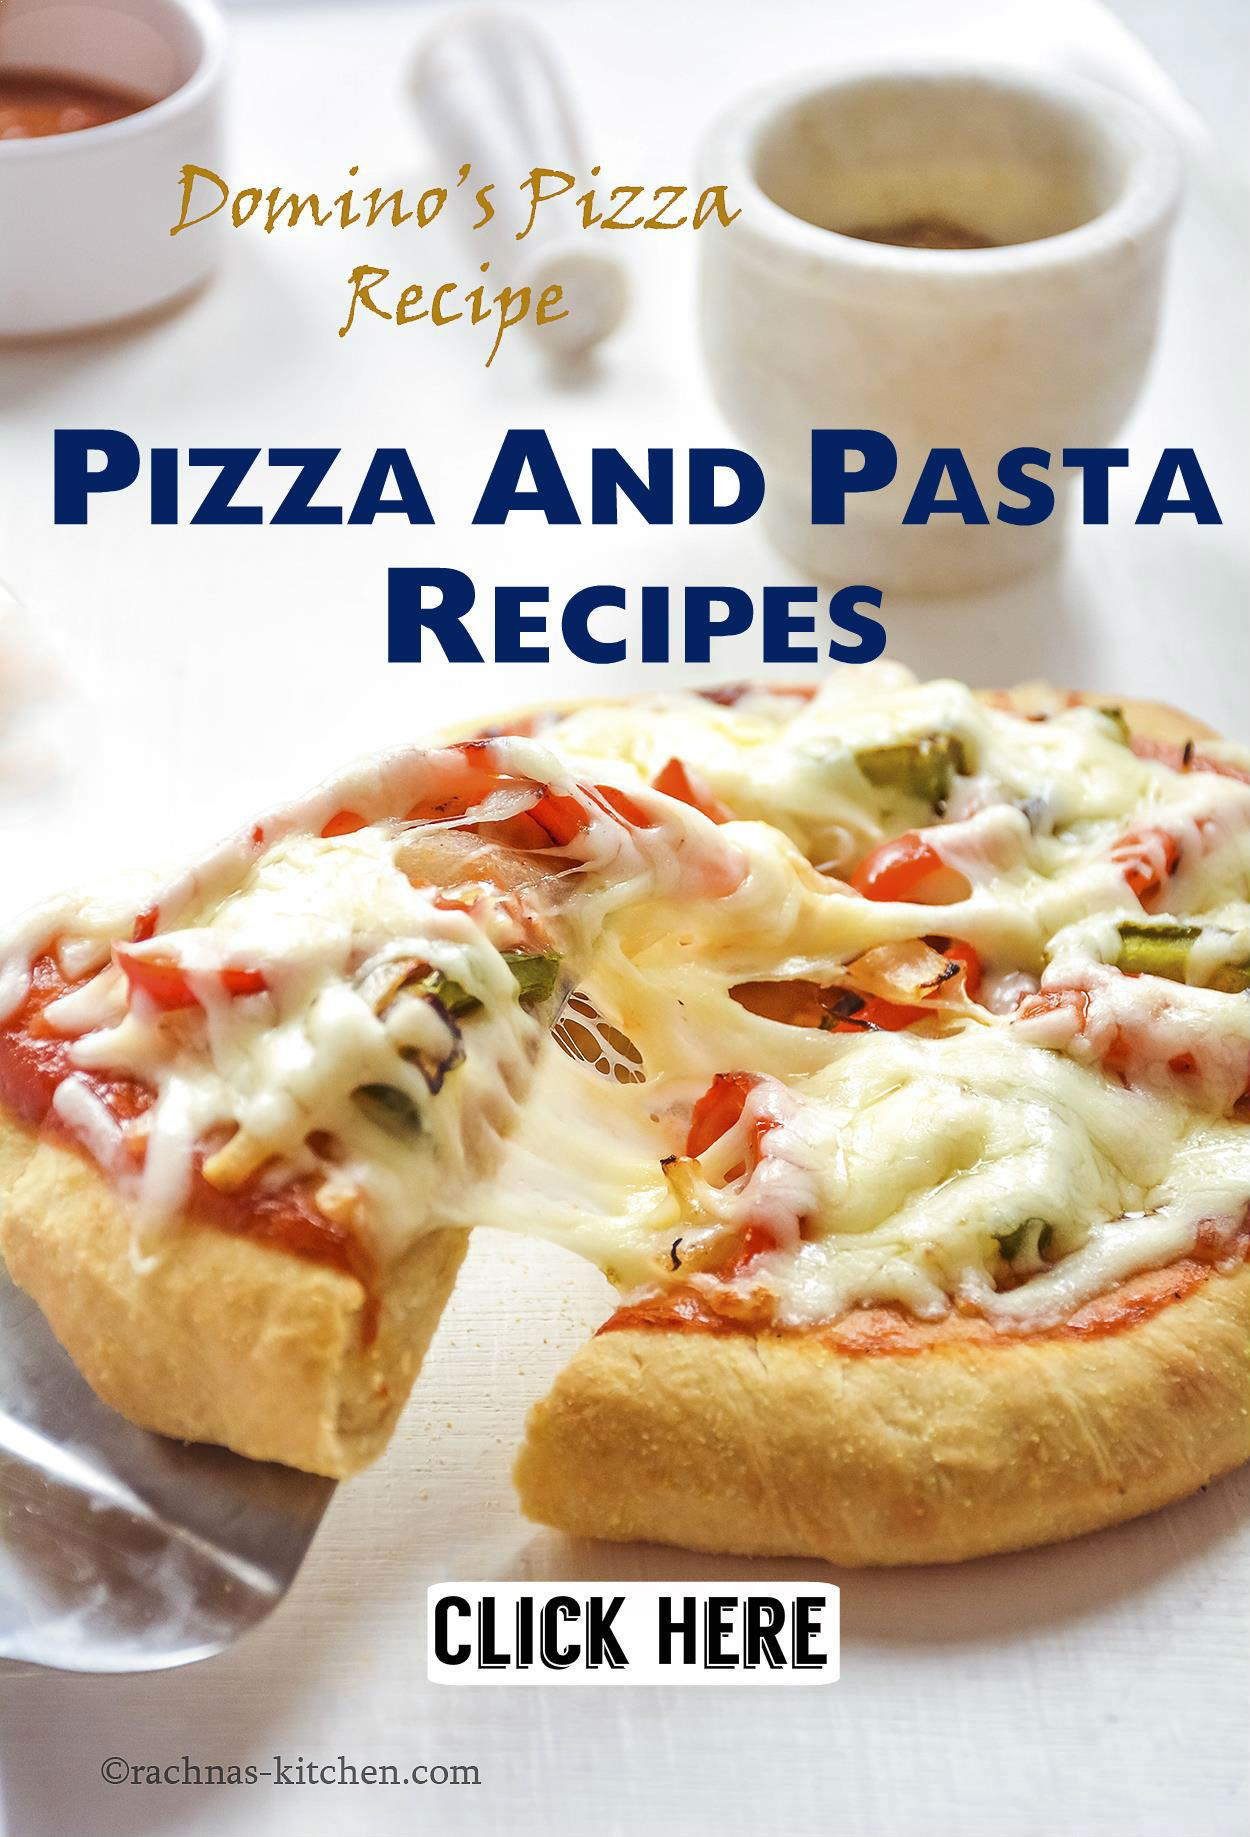 Pizza And Pasta Recipes